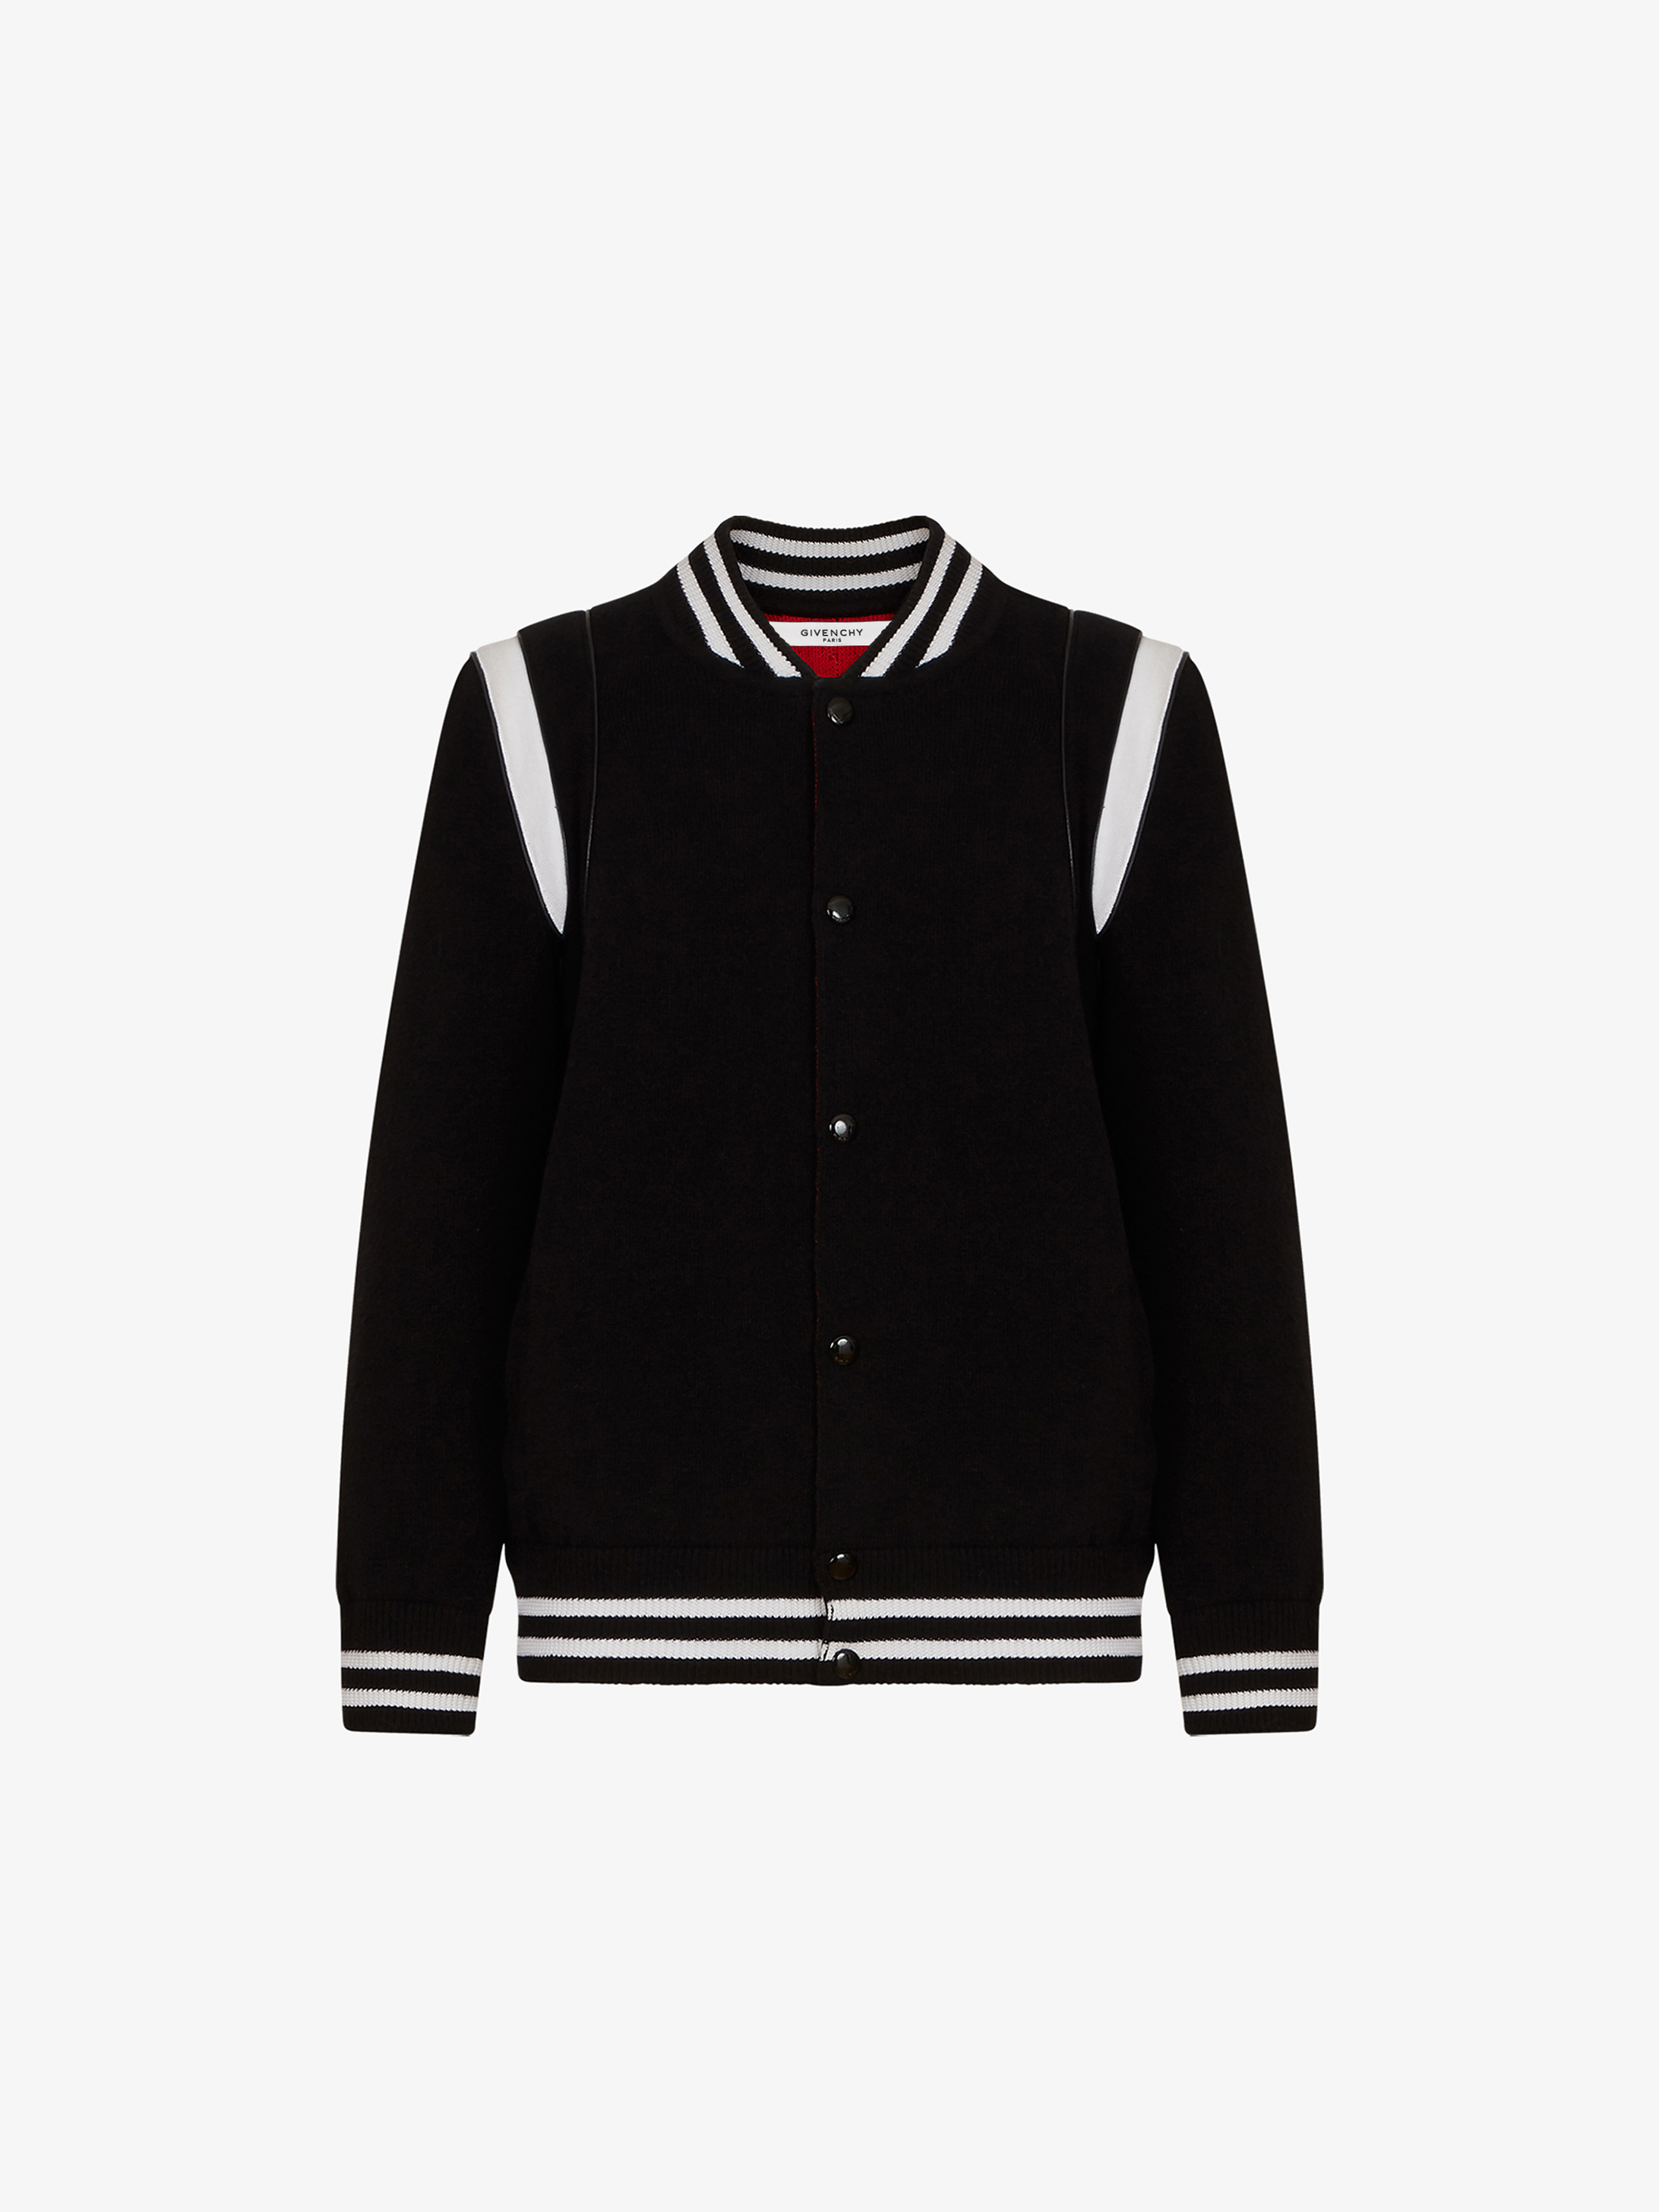 GIVENCHY PARIS knitted bomber jacket